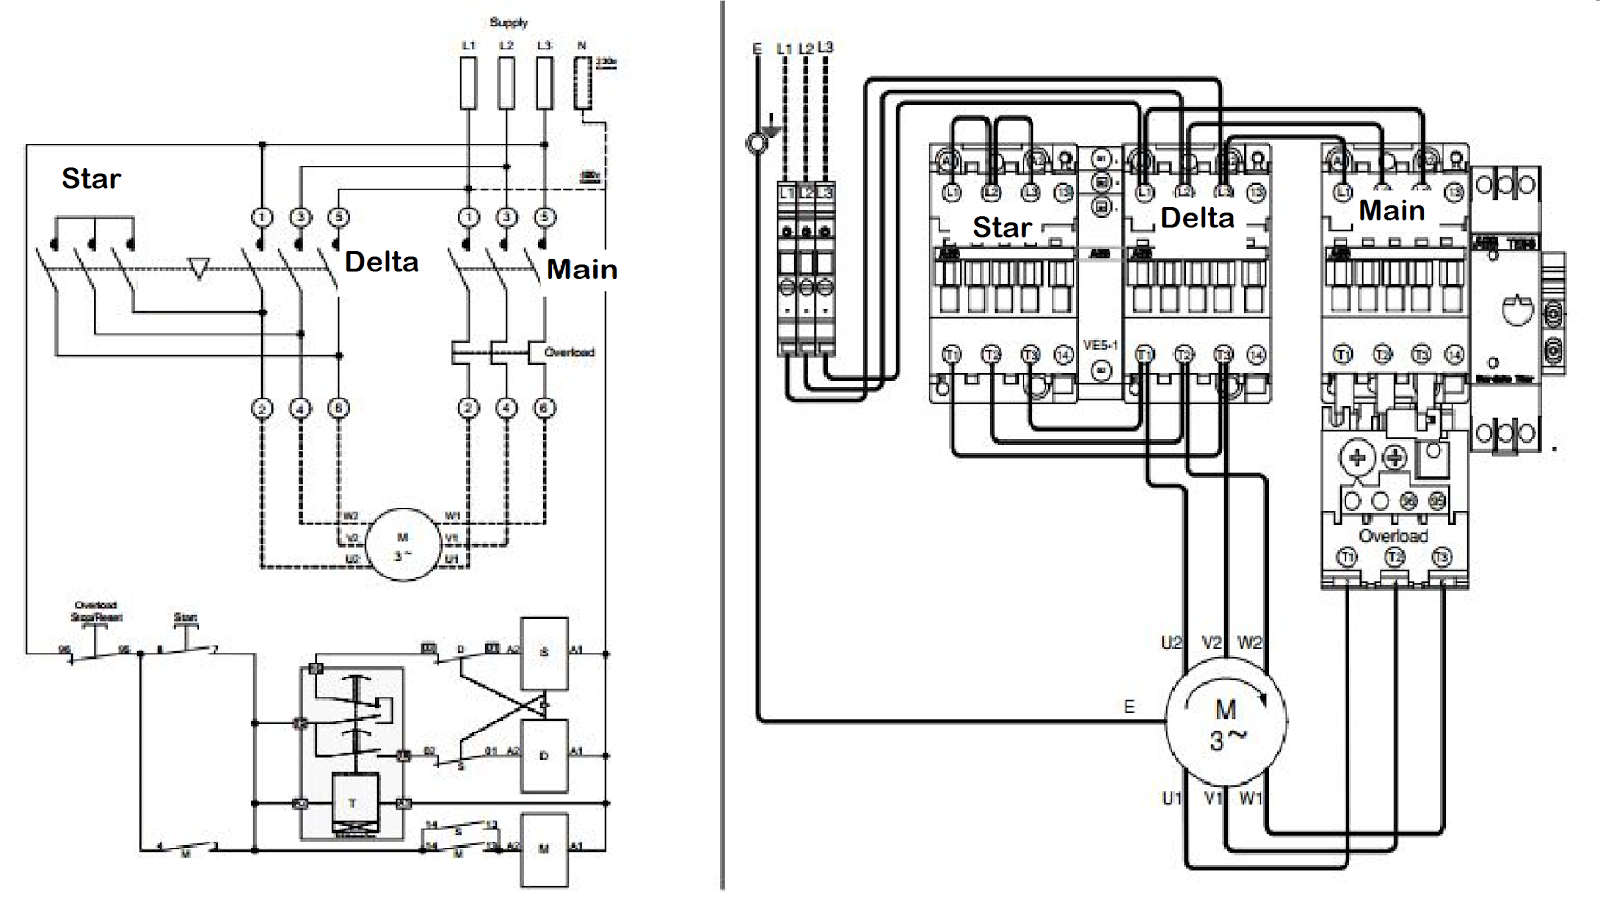 wiring diagram star delta pdf